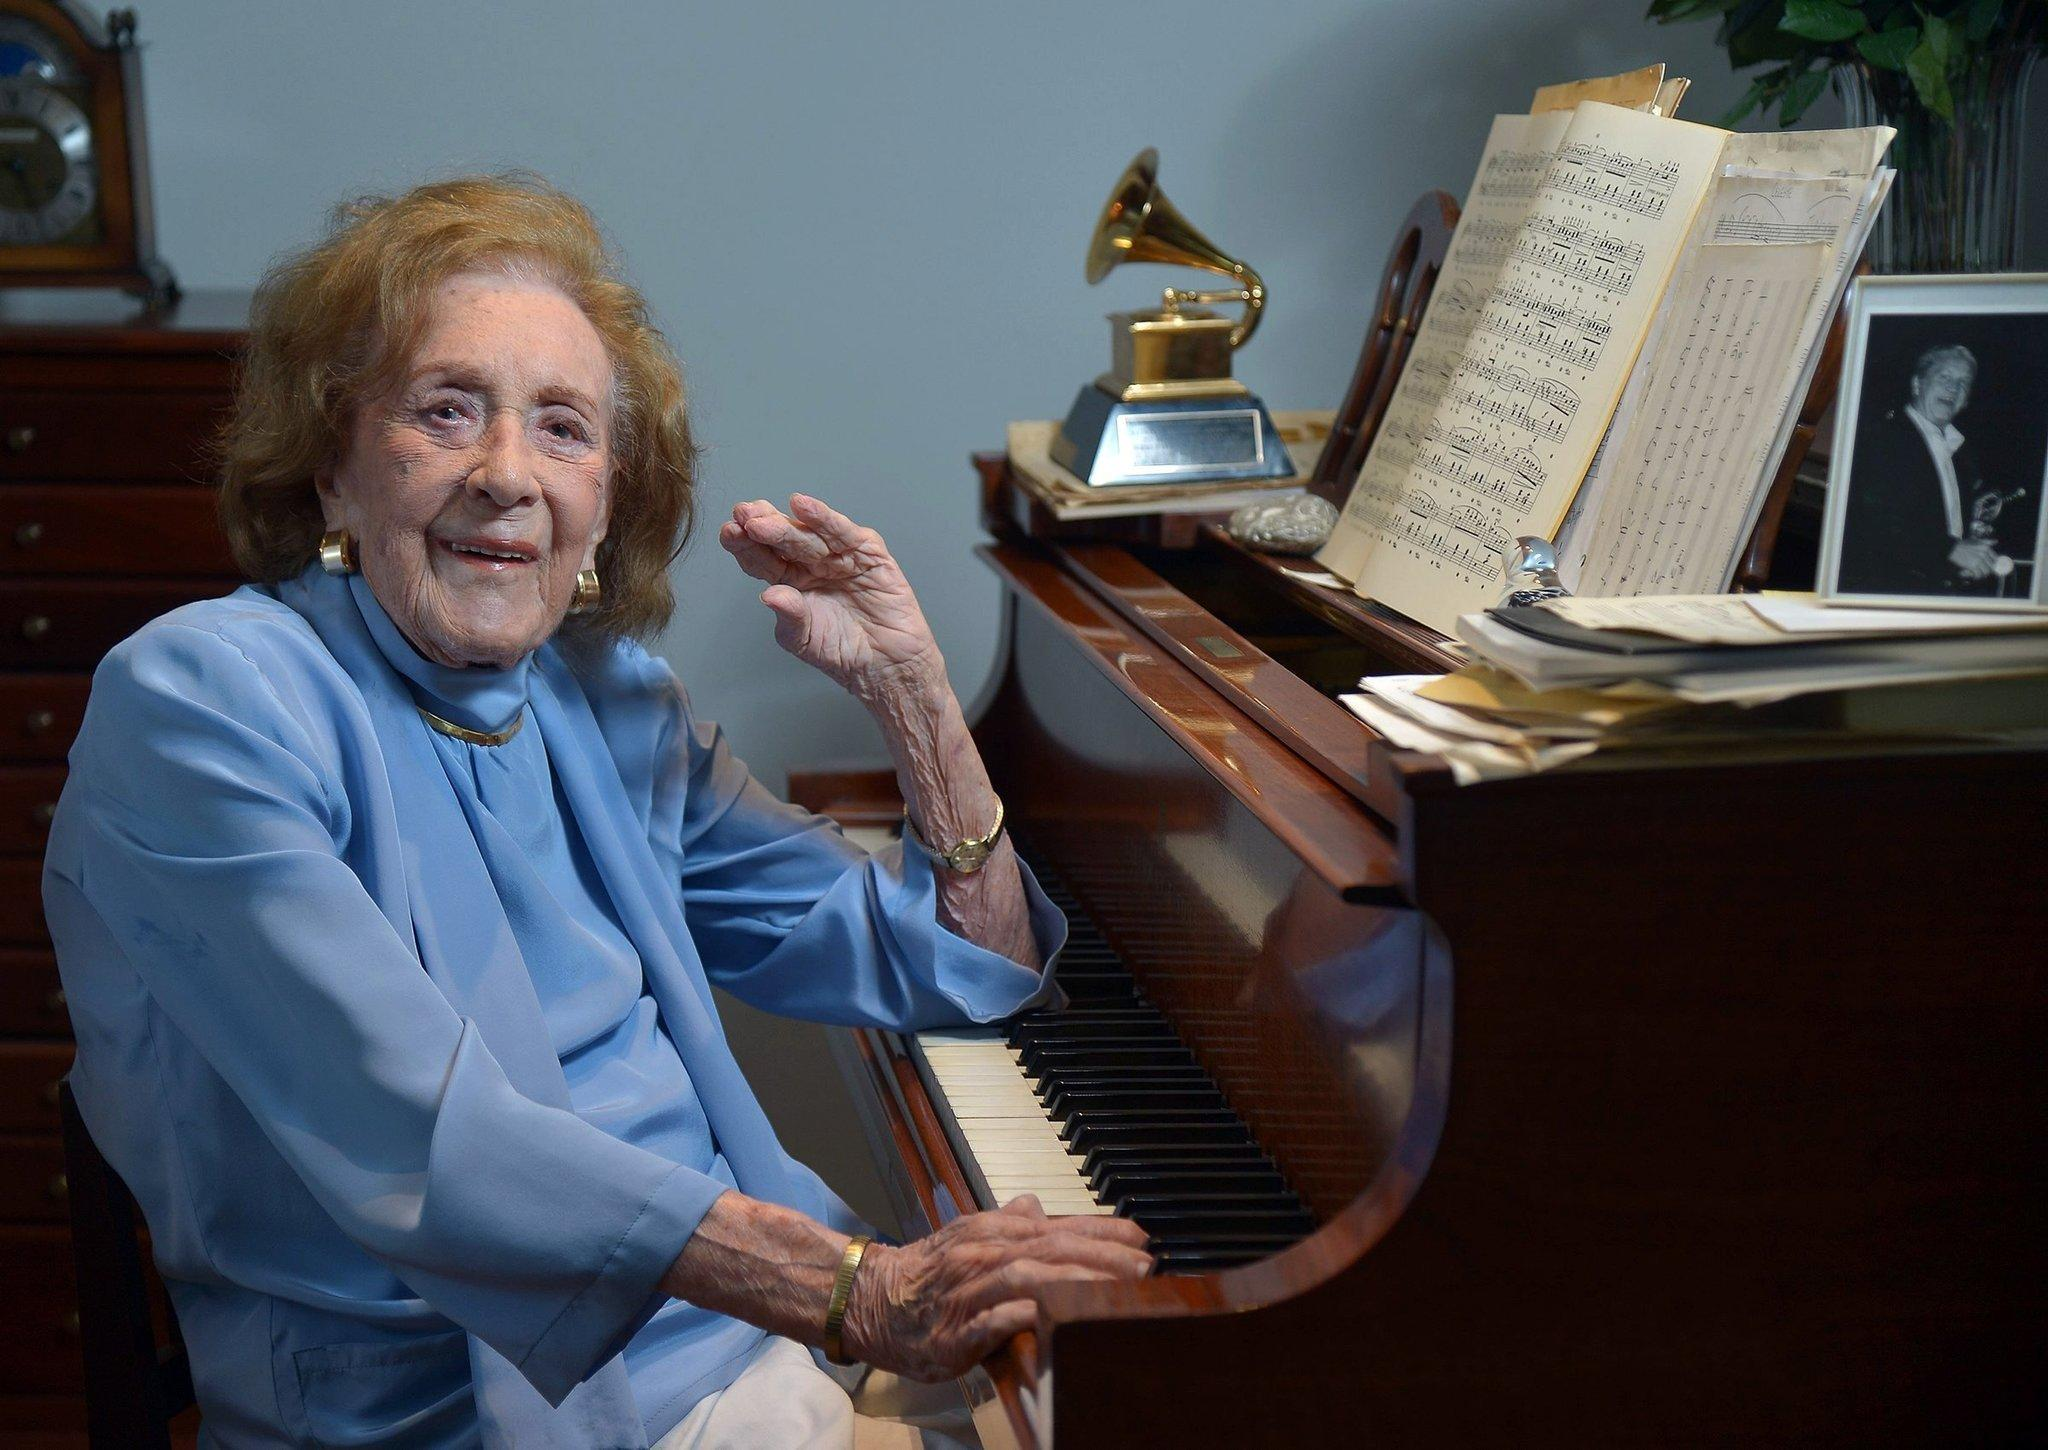 Jazz great Marian McPartland, 95, sits at the piano in her living room.